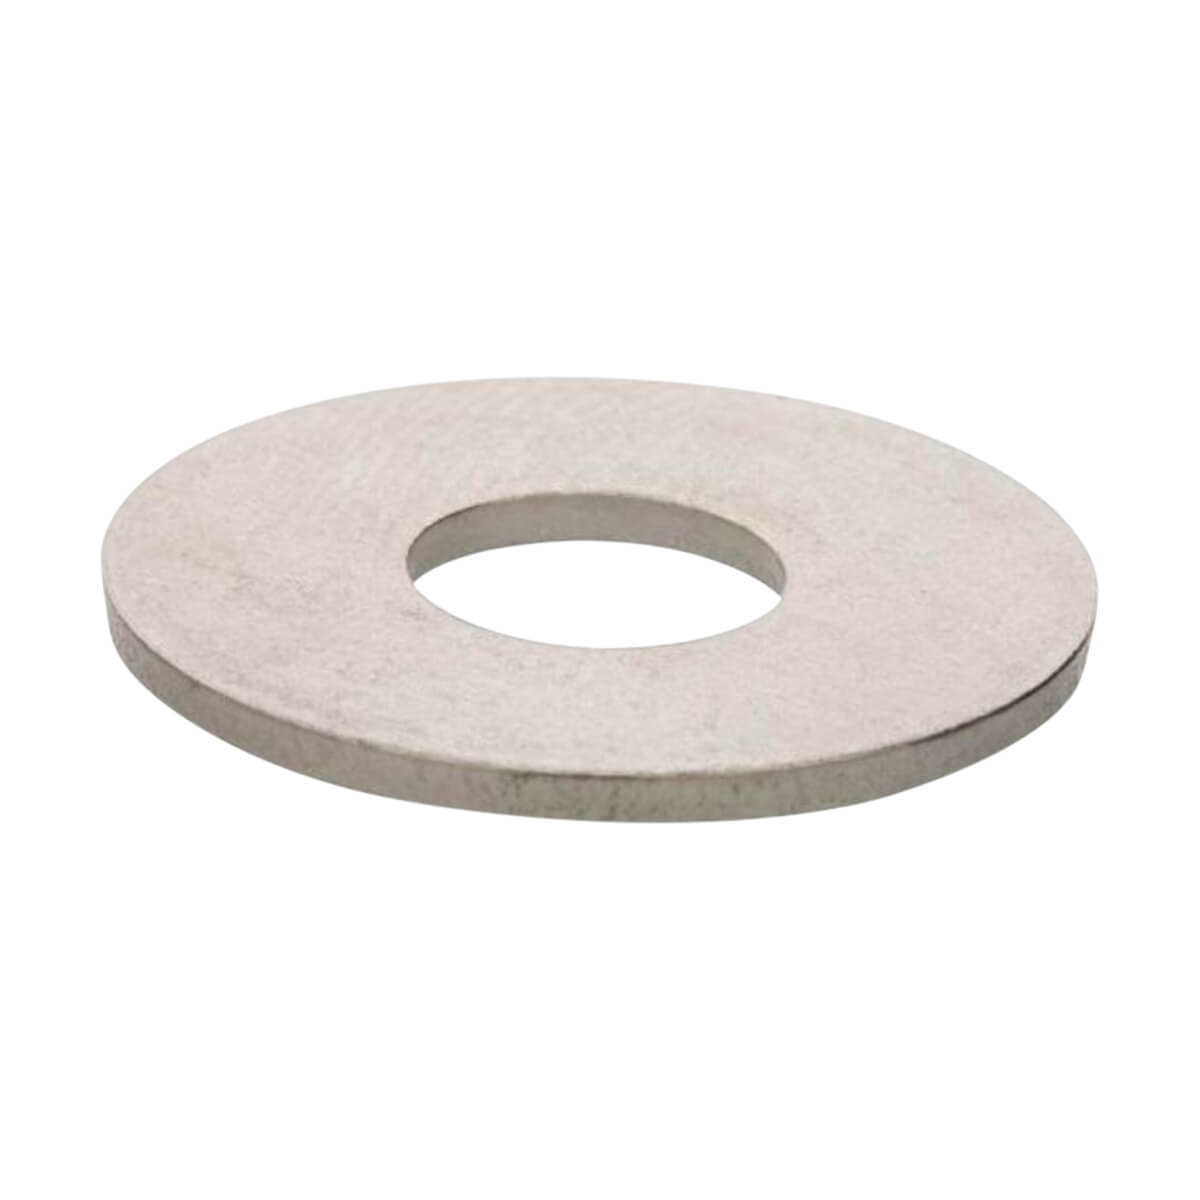 Flat Washers - Steel - M6 - 6 Pack